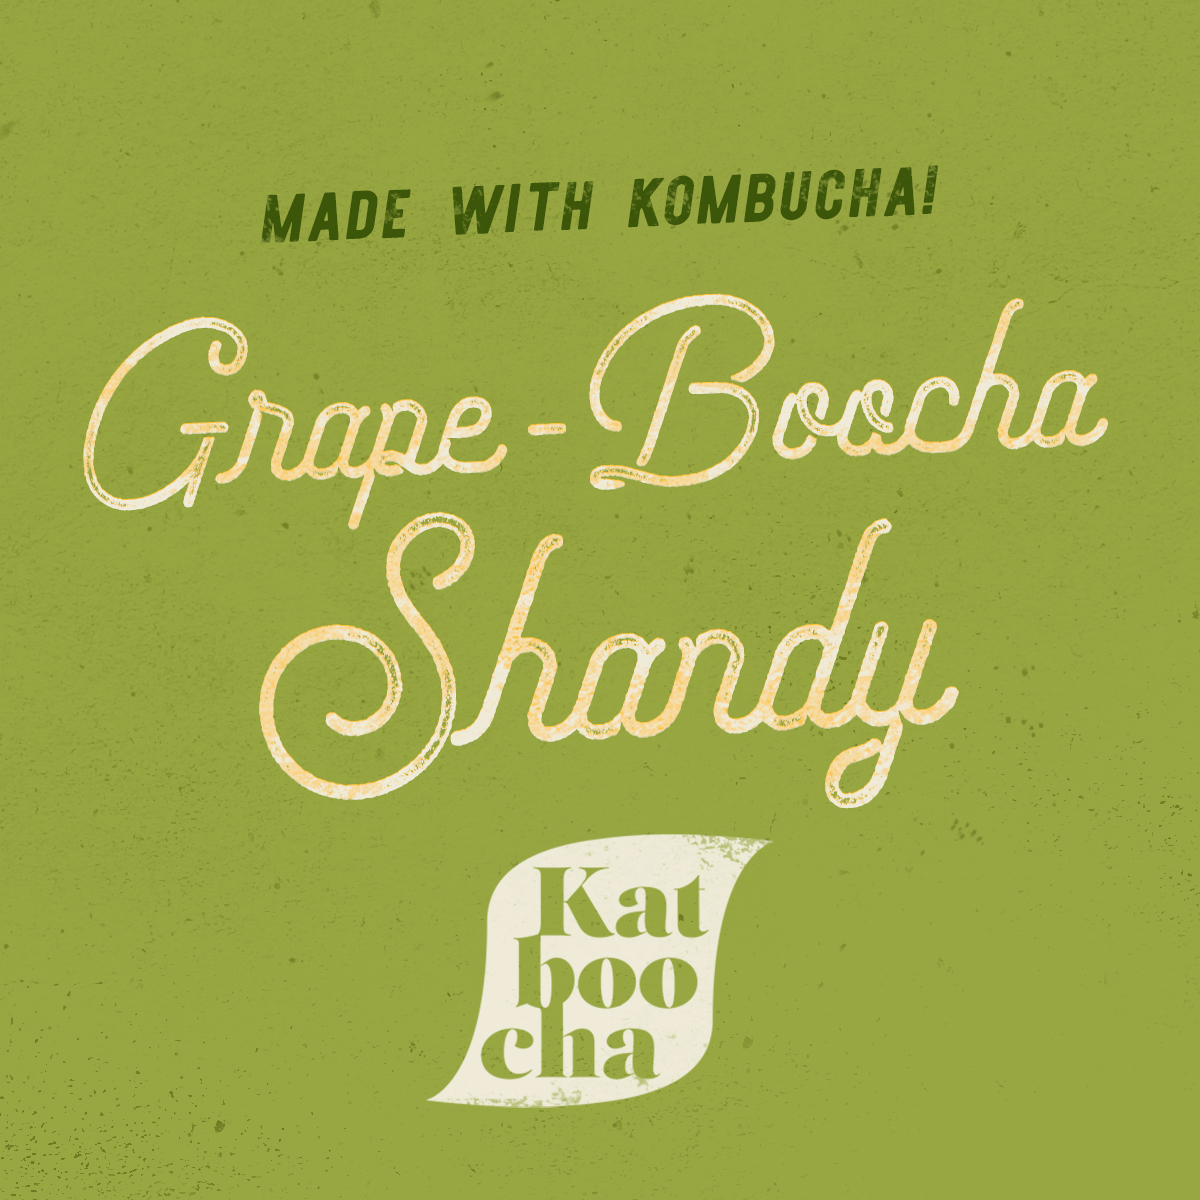 Grape-boocha Shandy